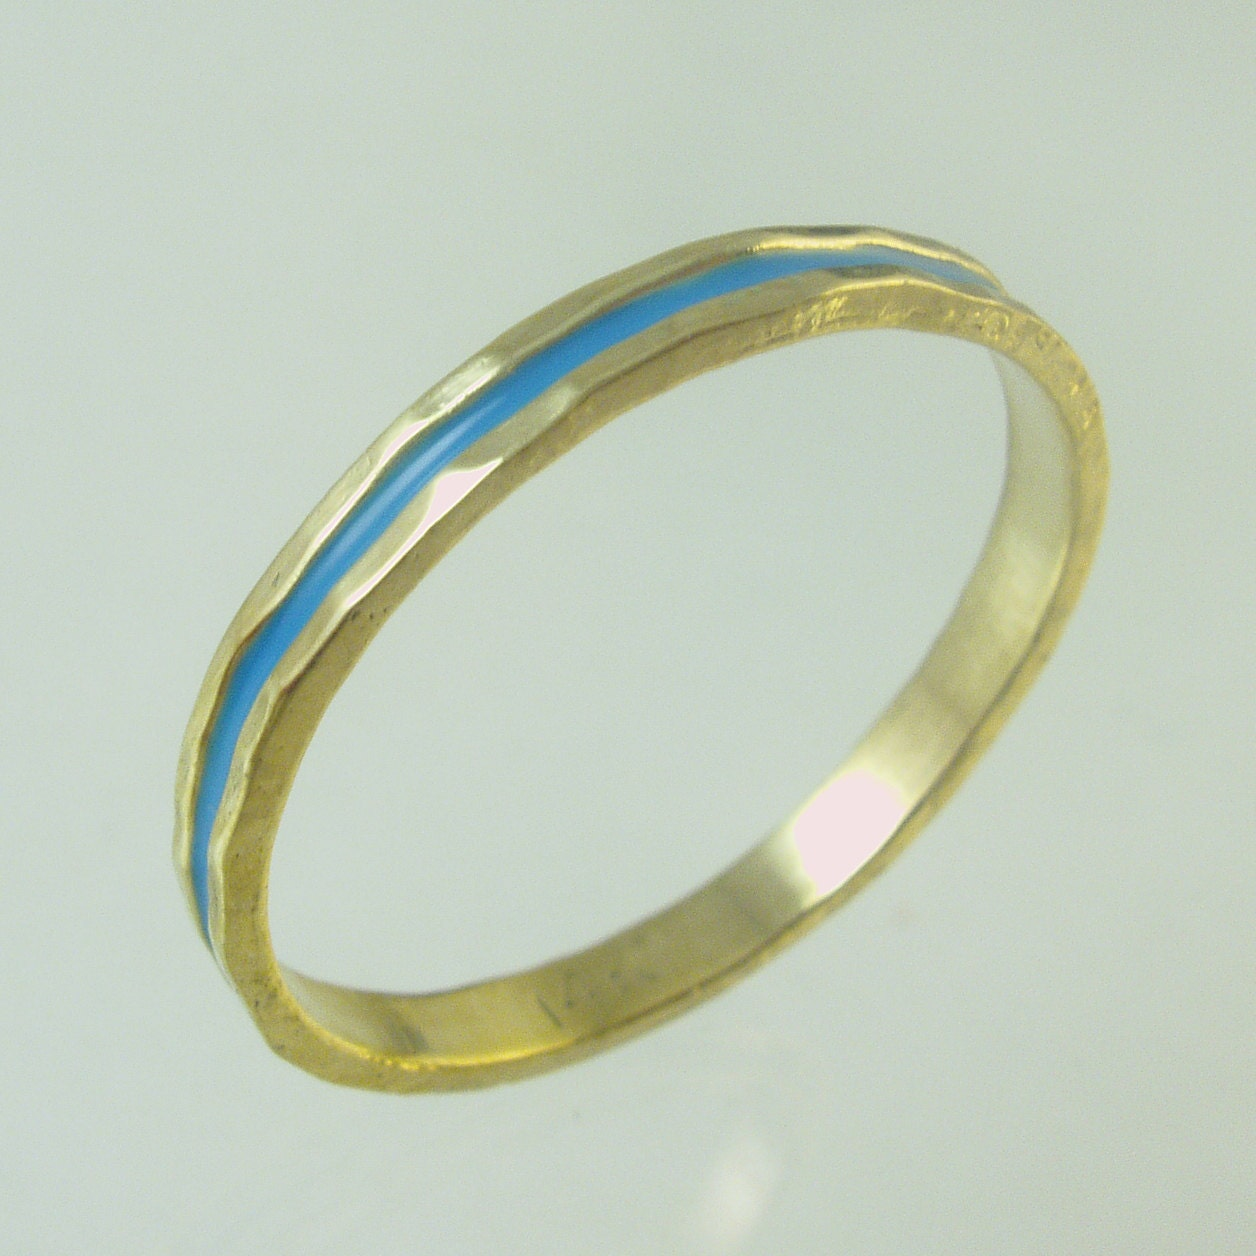 Woman Wedding Band14 Karat Ring Recycled Gold Wedding